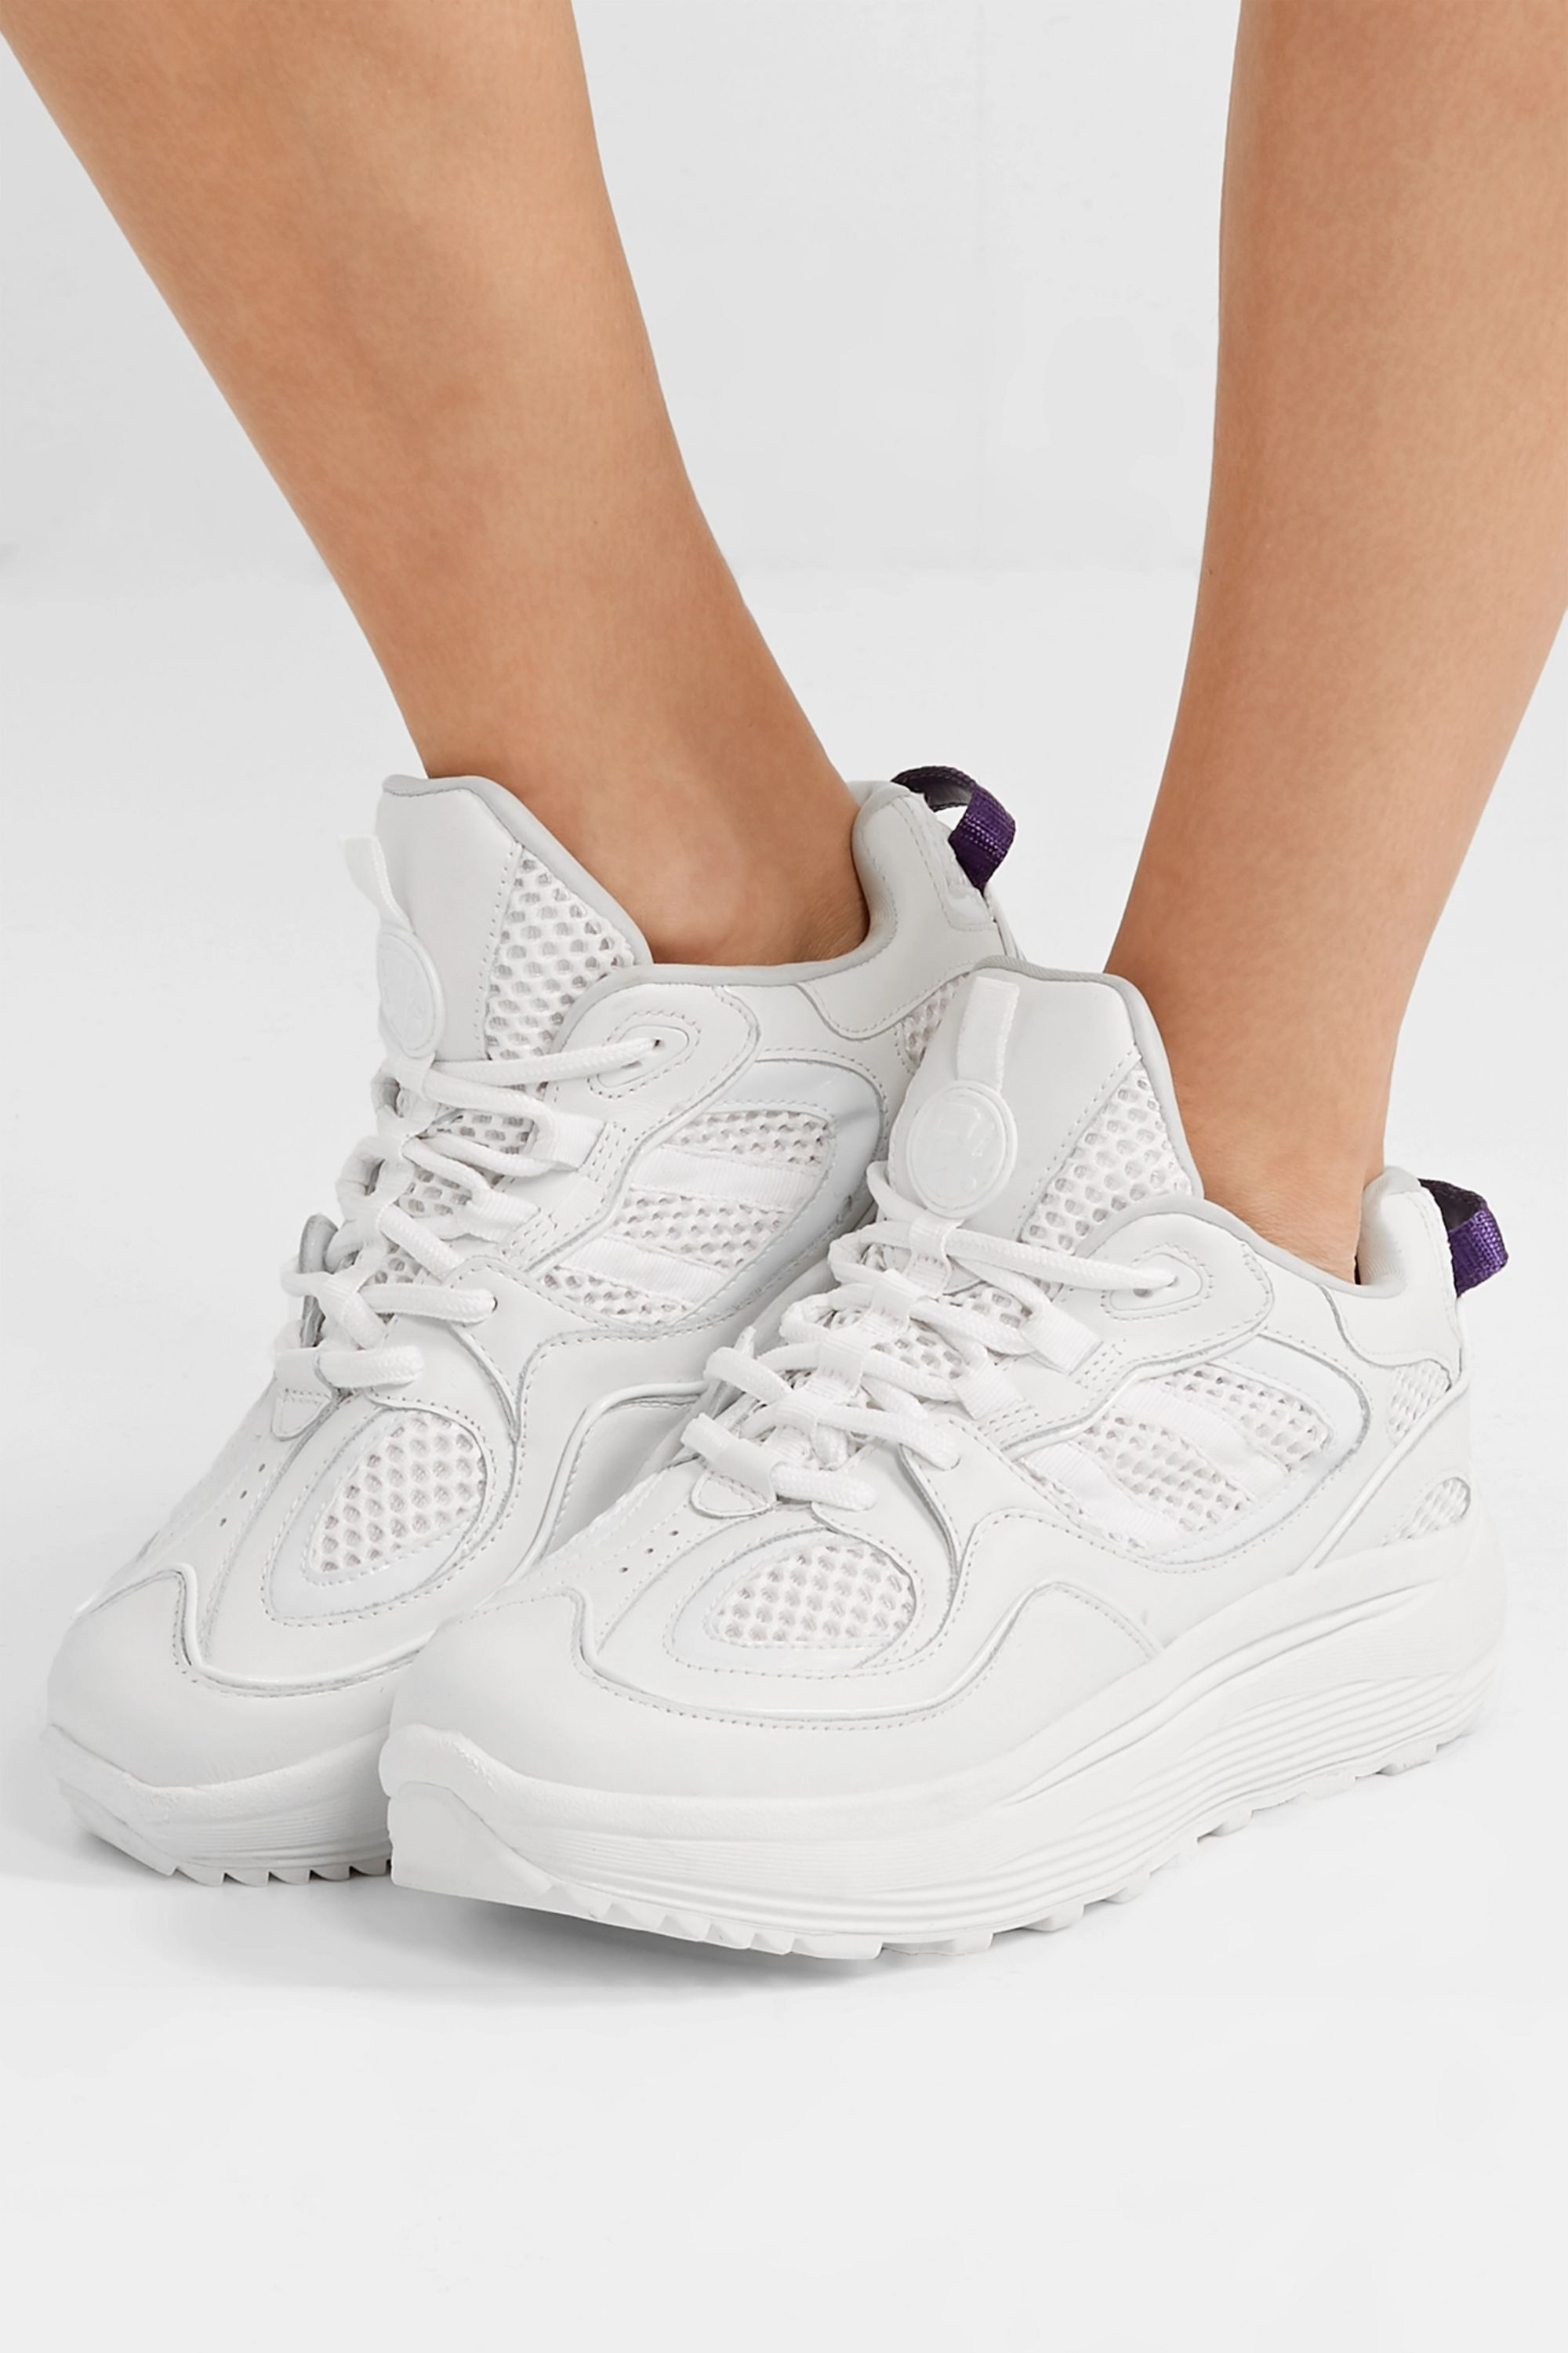 White Jet Turbo mesh, smooth and patent